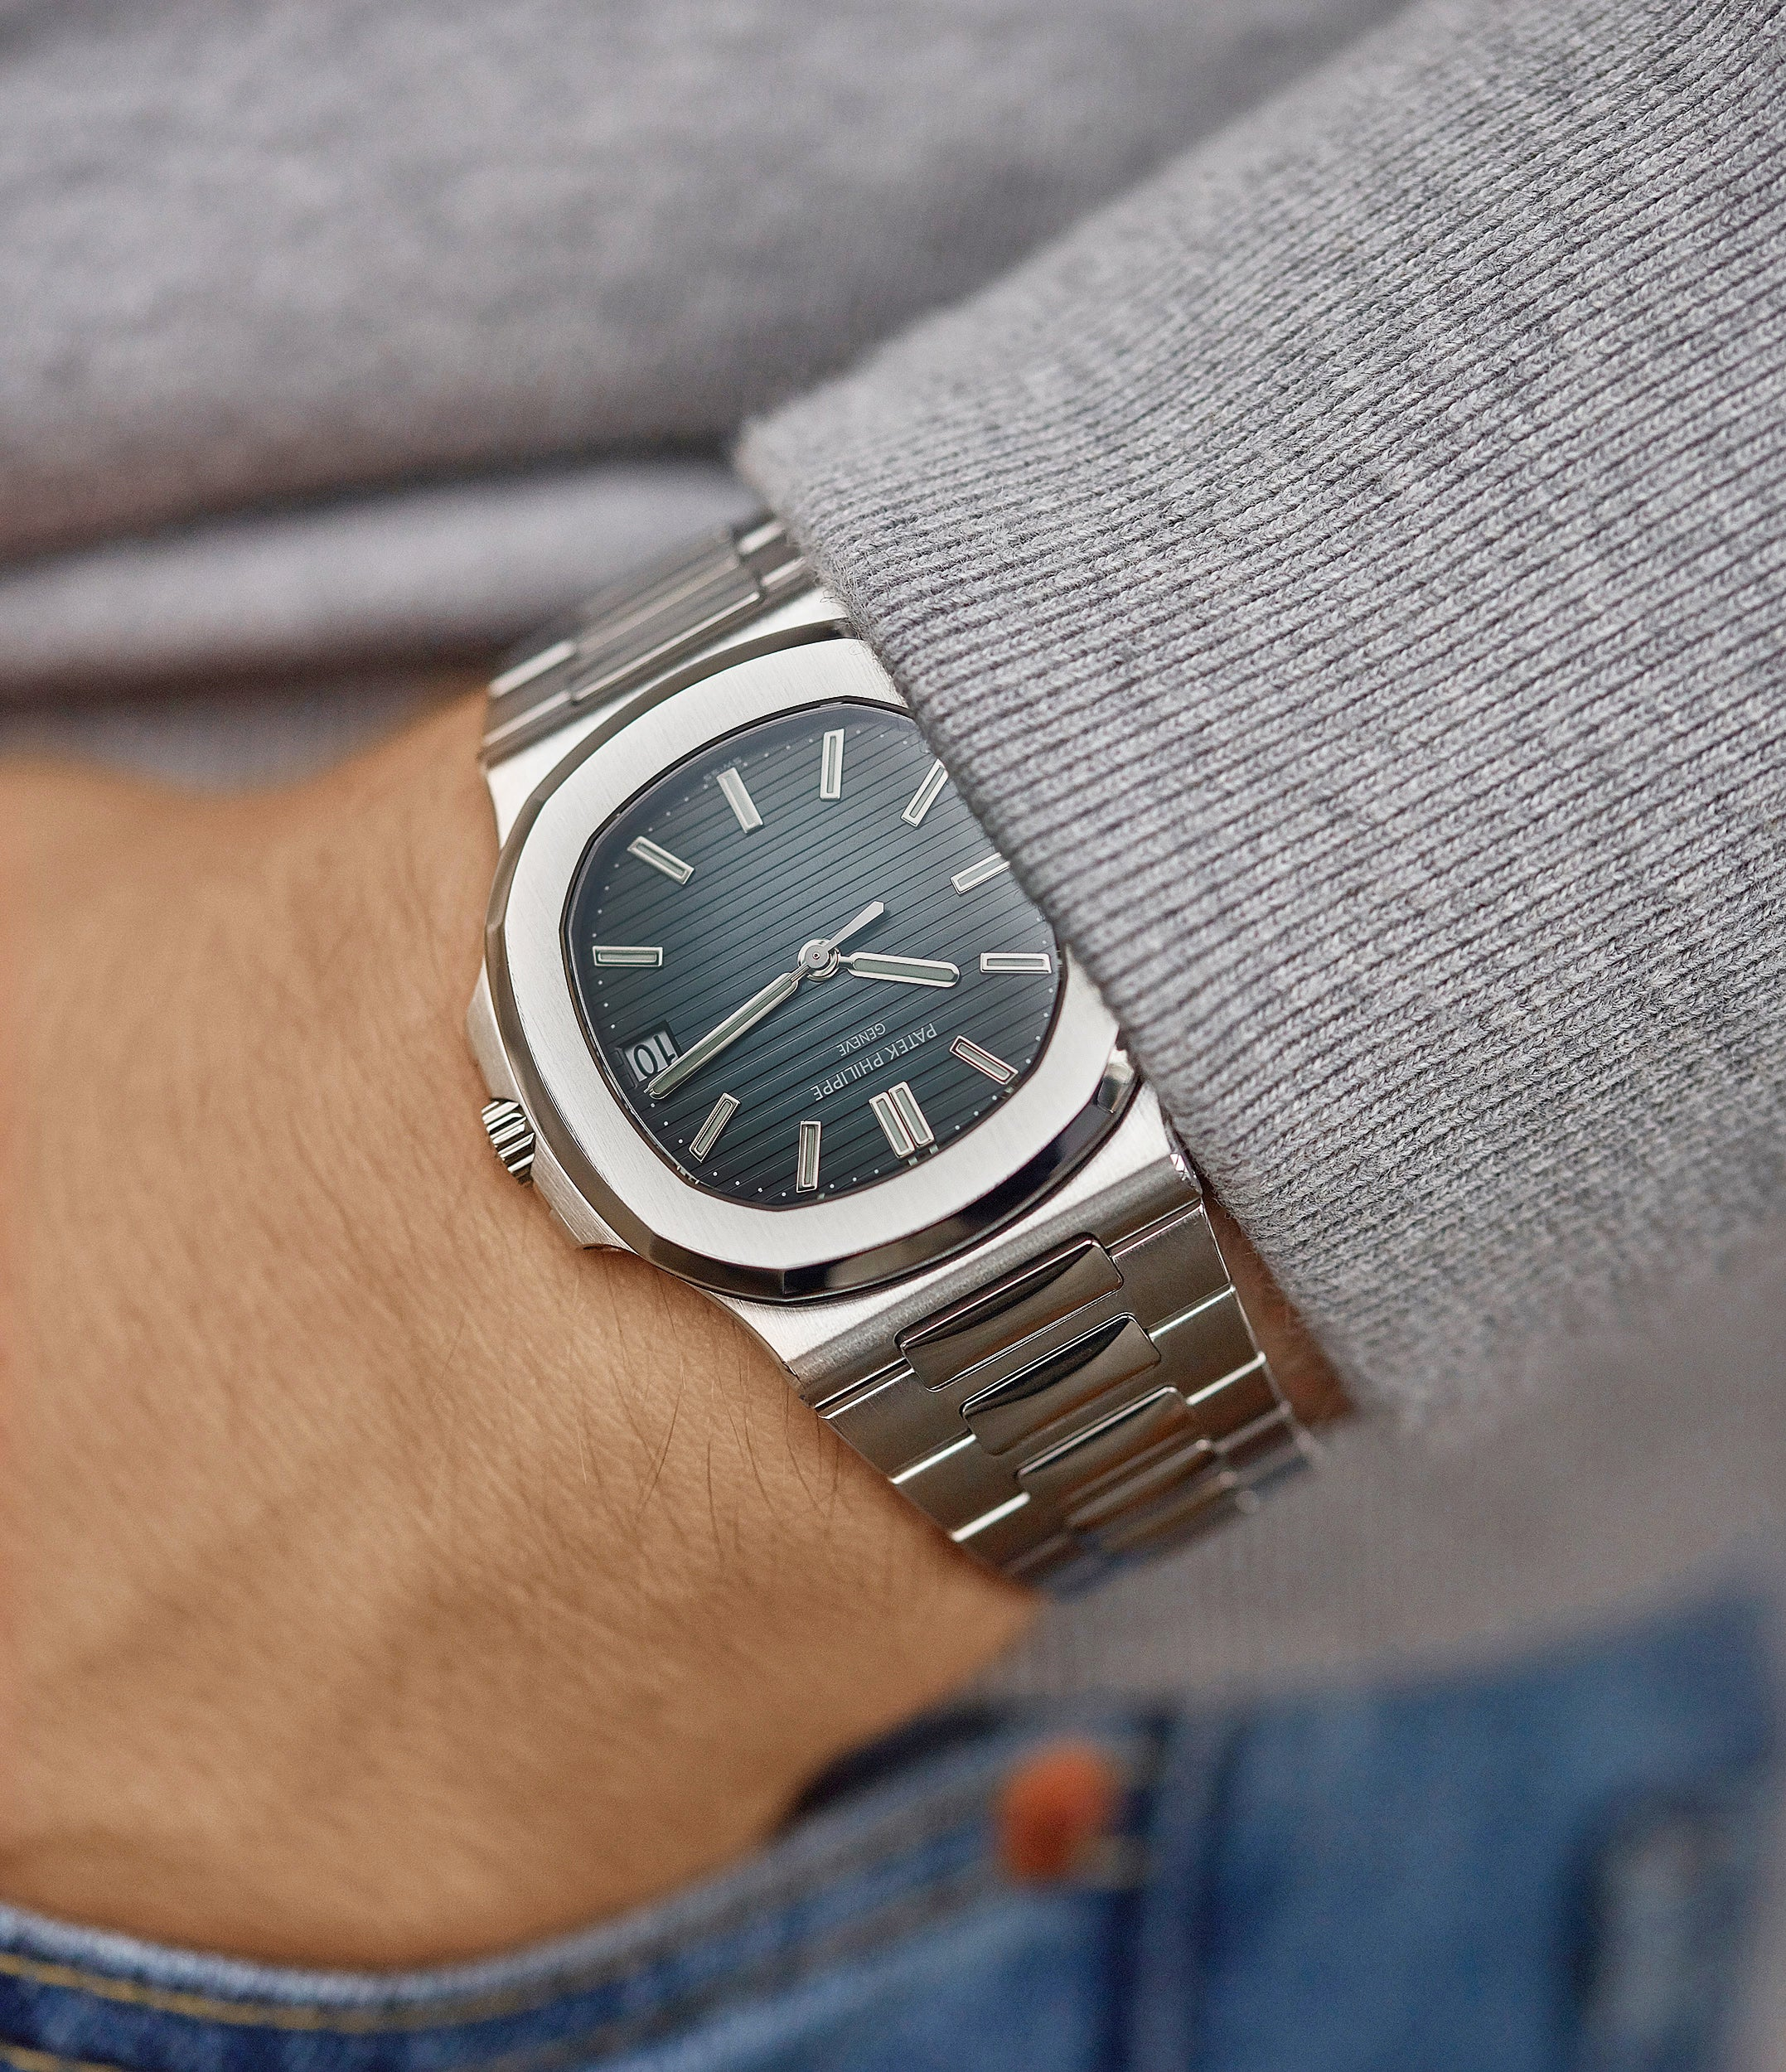 on the wrist Patek Philippe Jumbo Nautilus 5711/1A-001 steel pre-owned sport watch for sale online at A Collected Man London UK specialist of rare watches